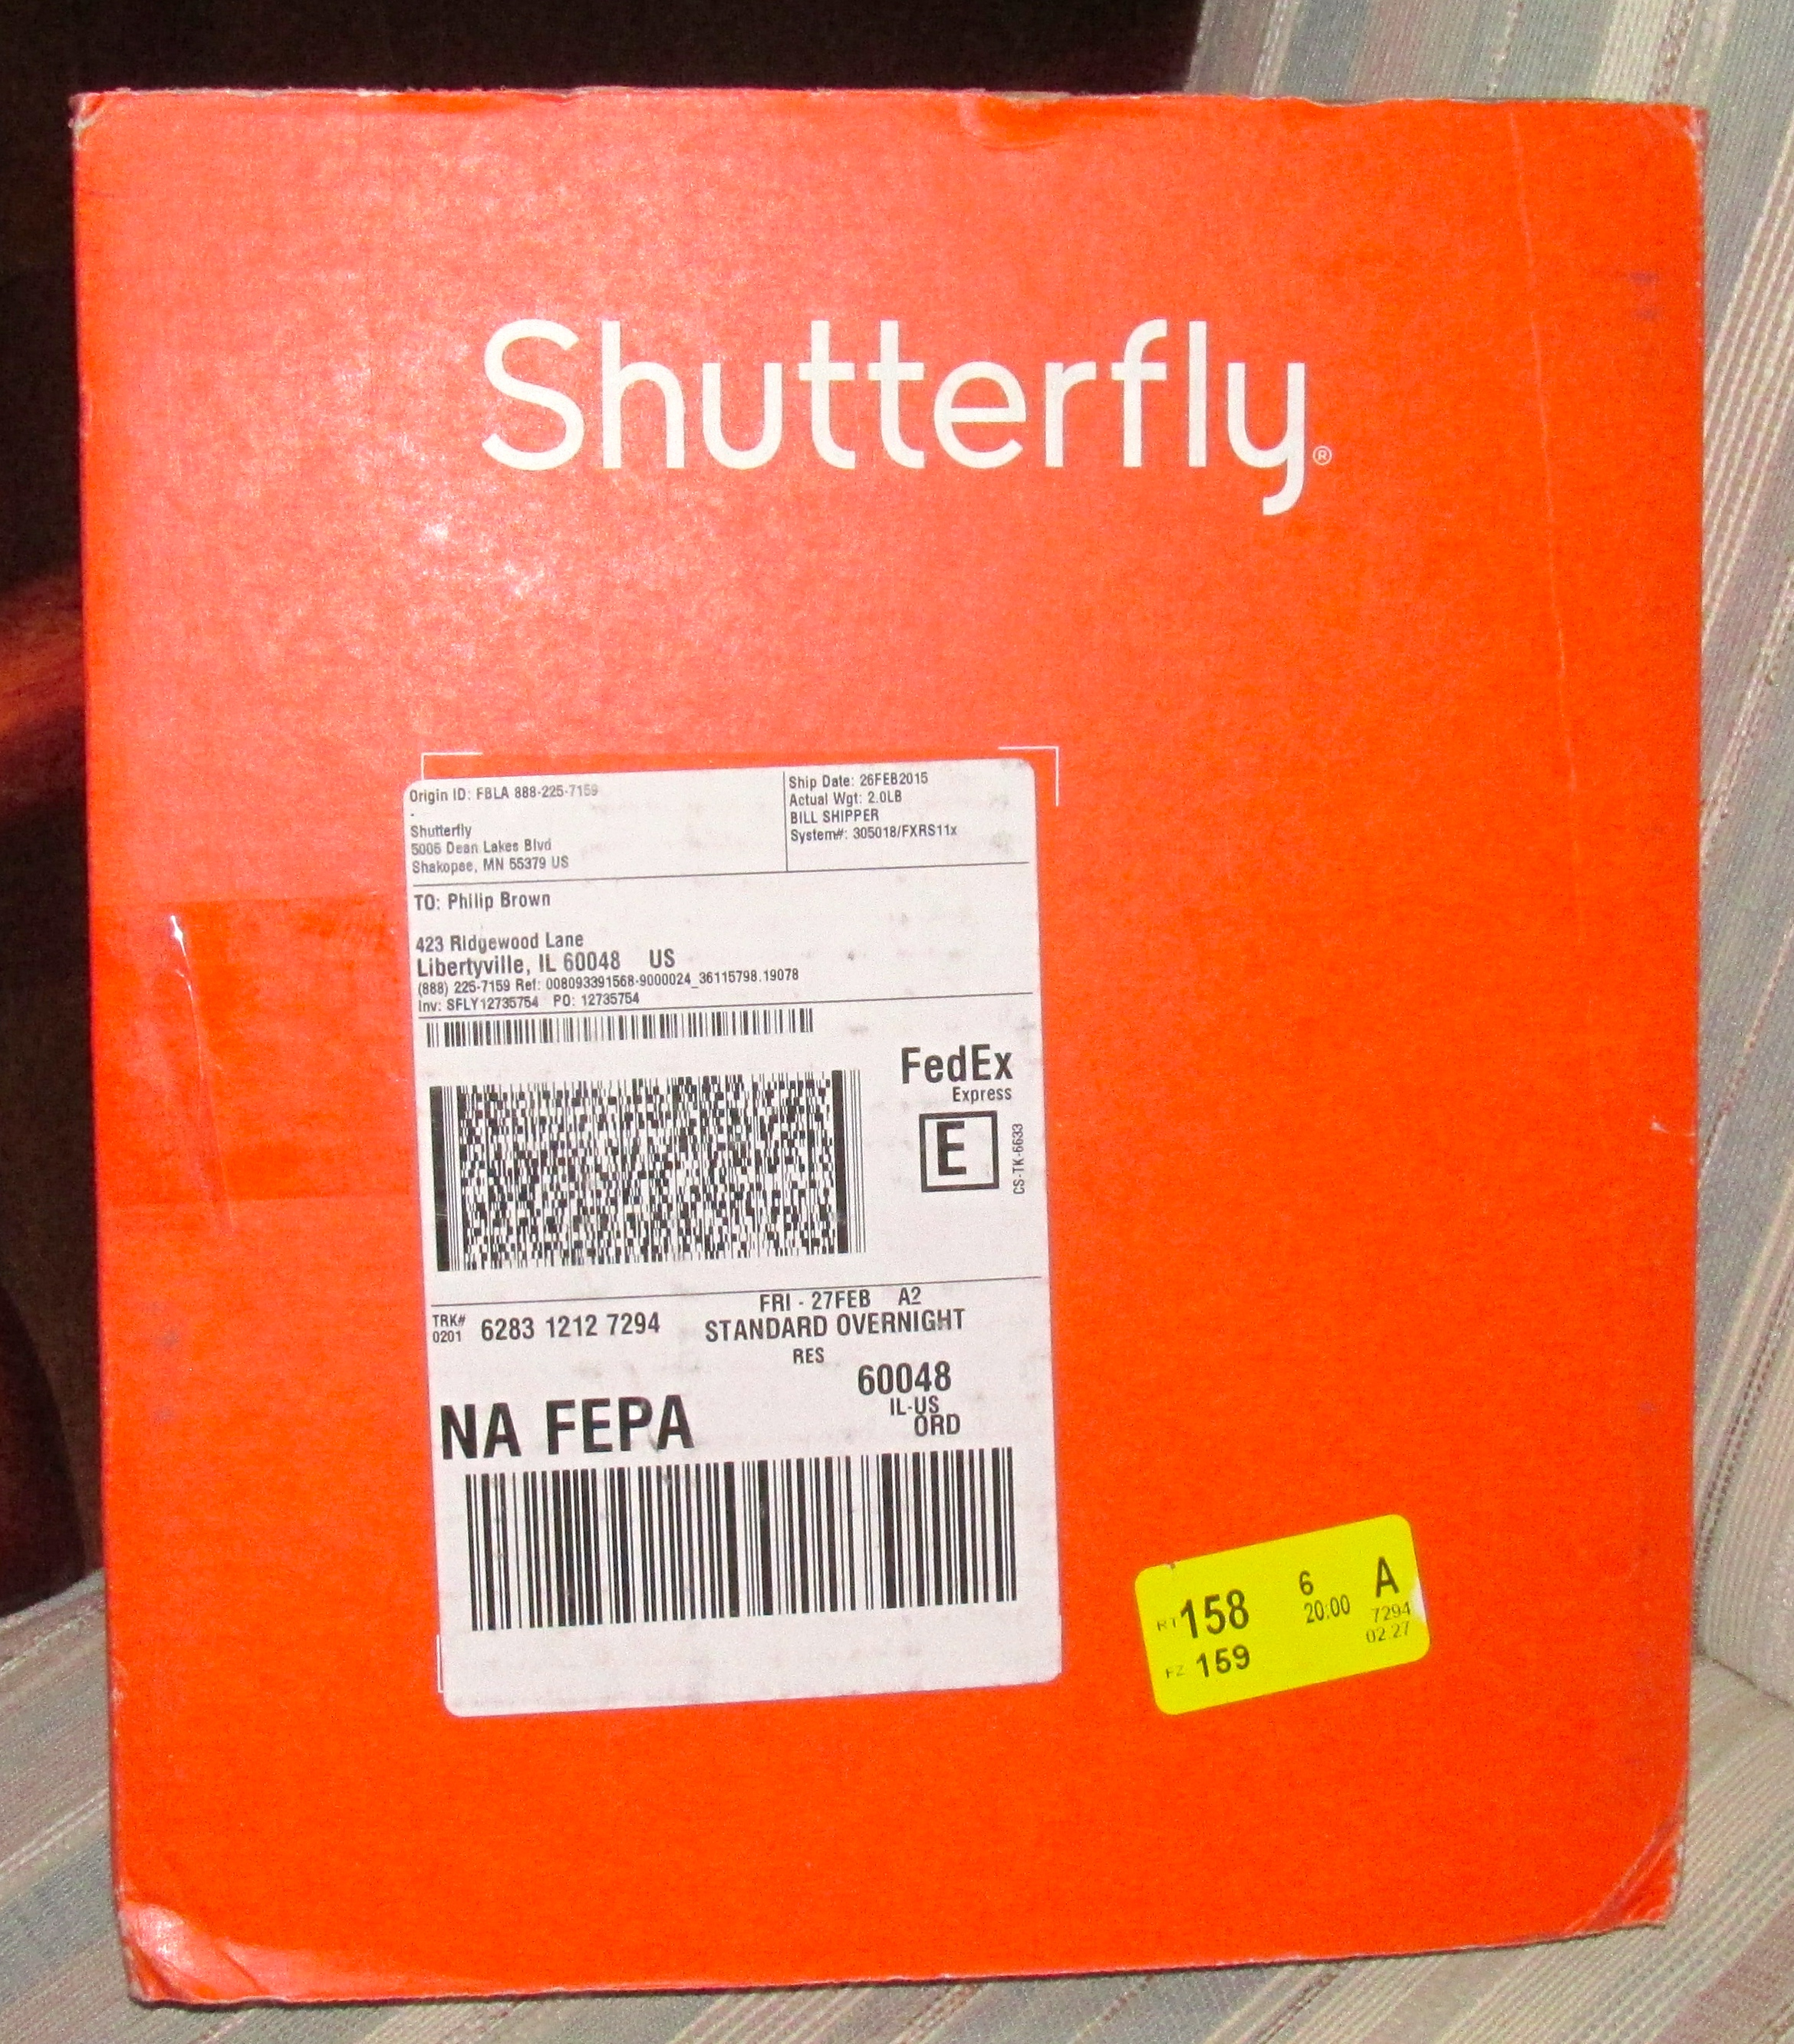 Usps phil brown page 2 shutterfly books enclosed along with some very attractive package inserts 1betcityfo Images